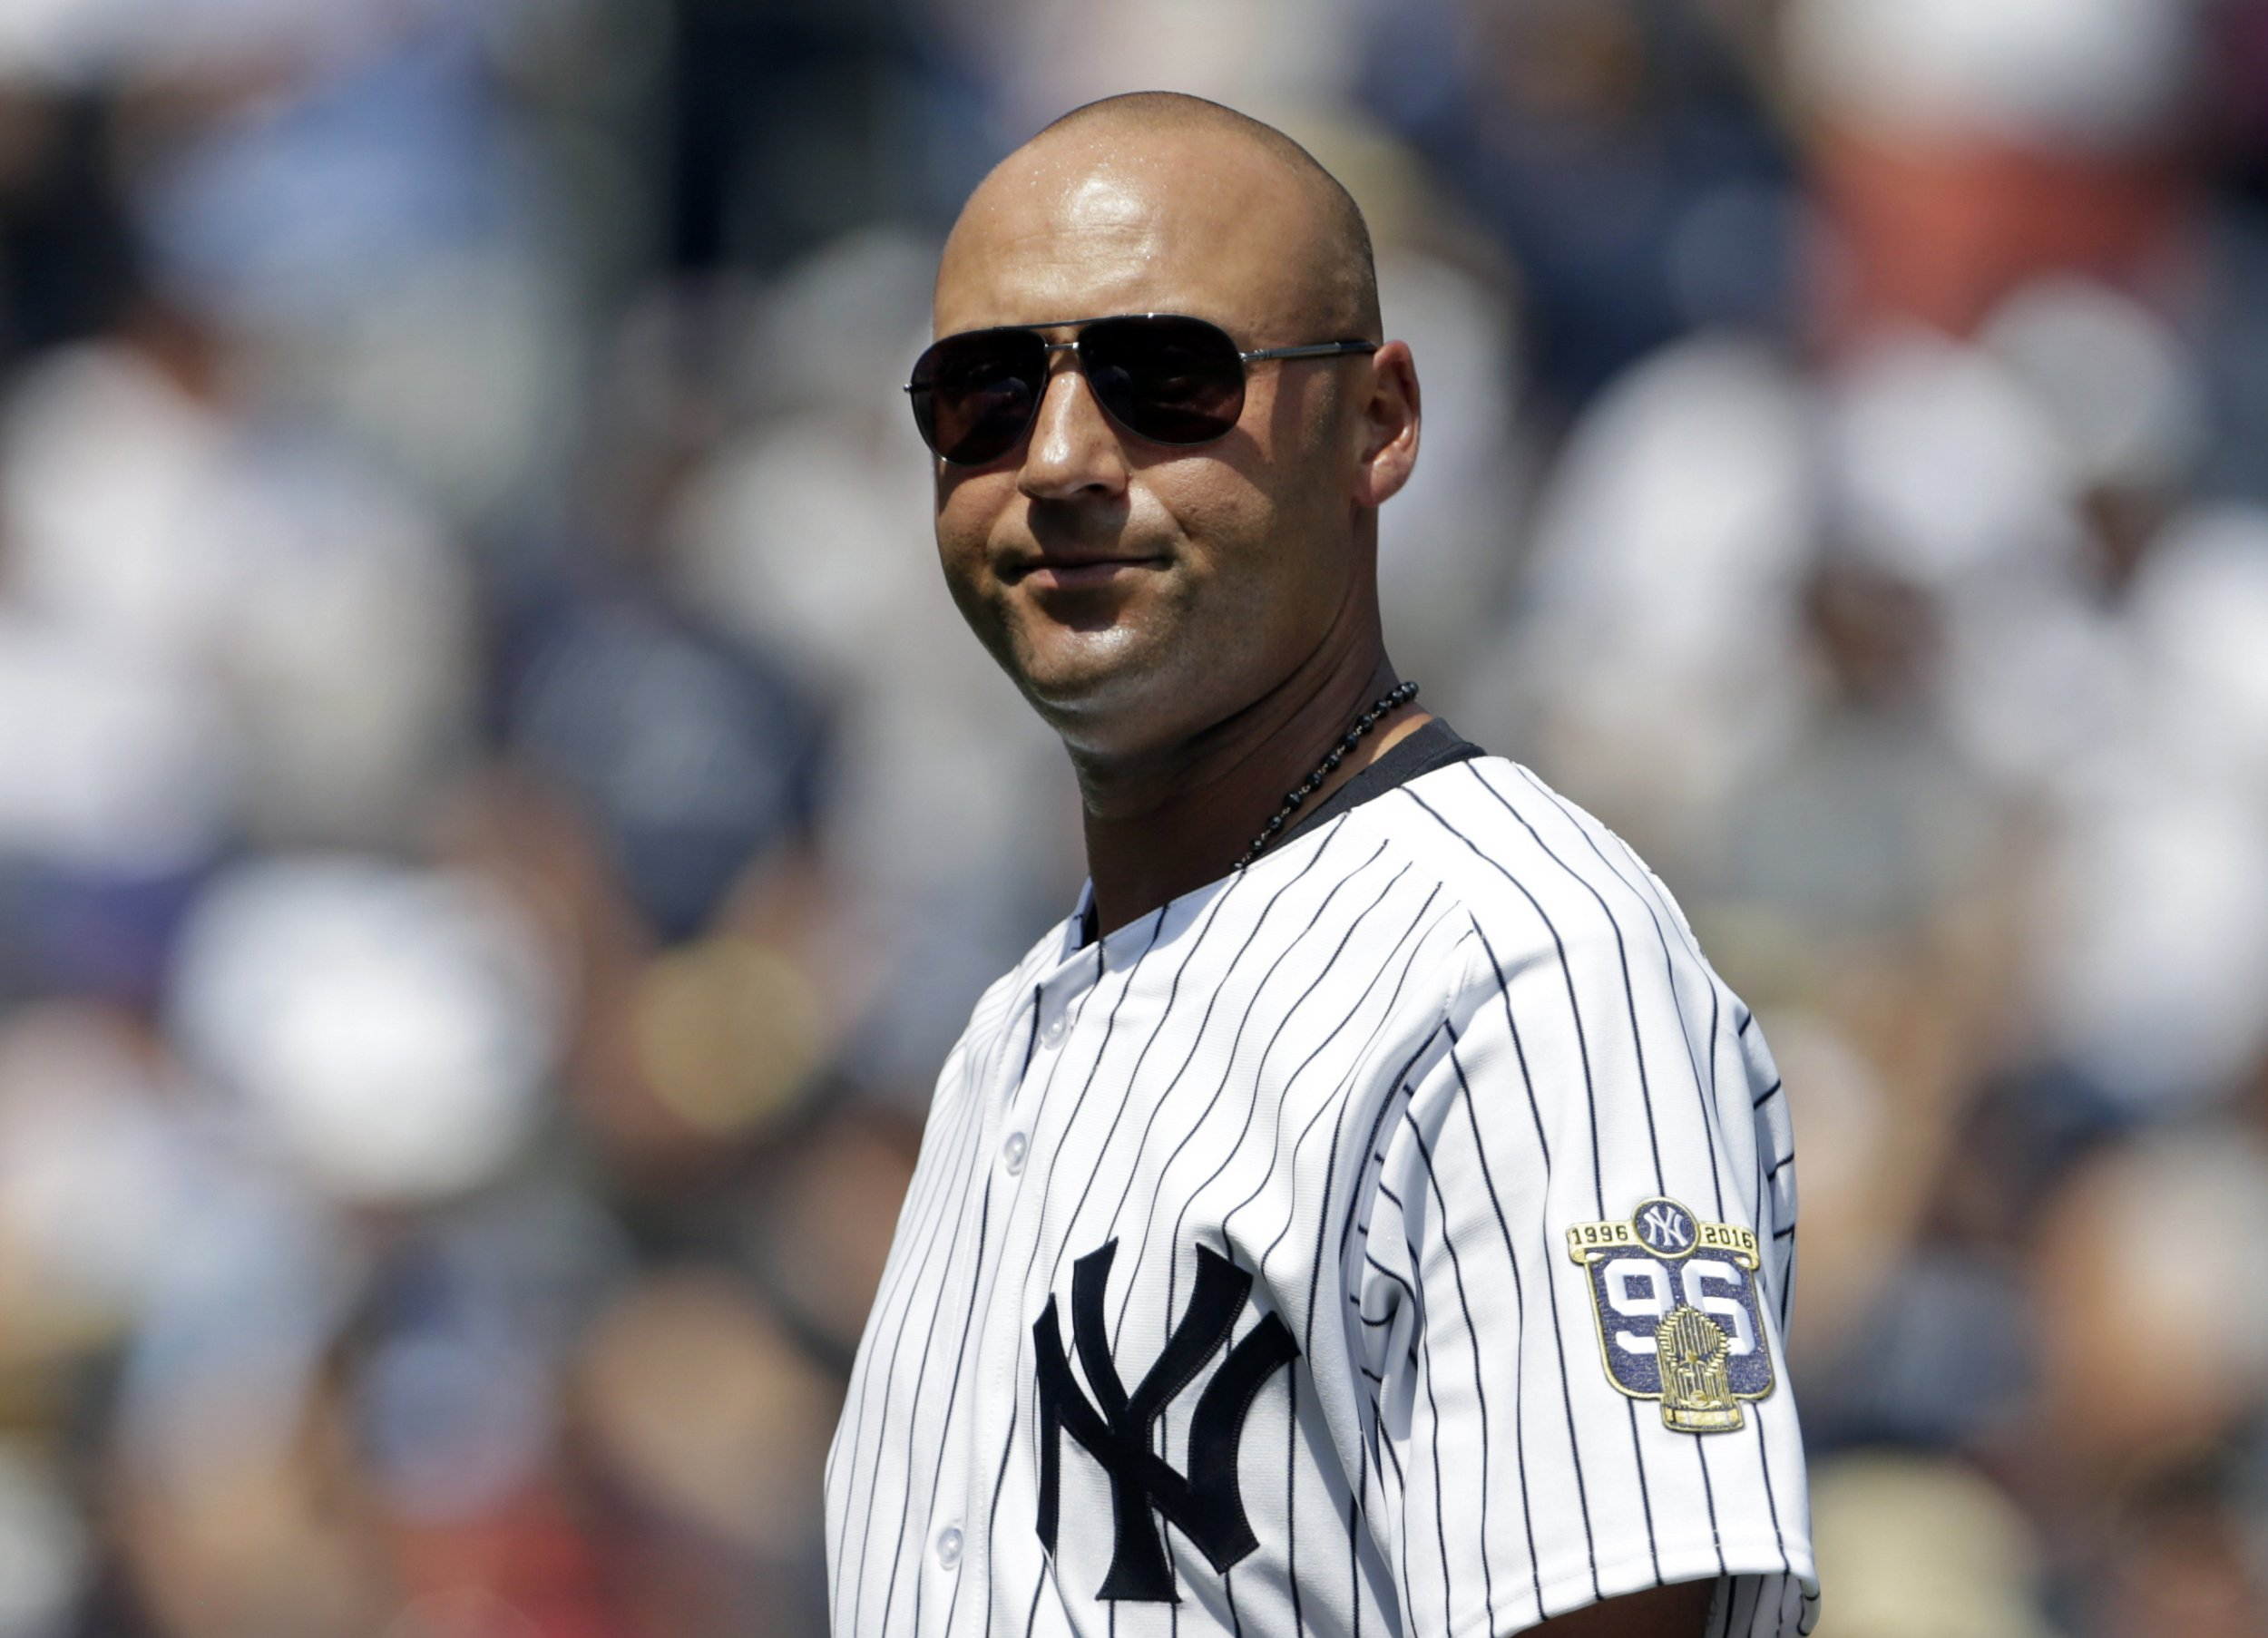 Former New York Yankees shortstop Derek Jeter.